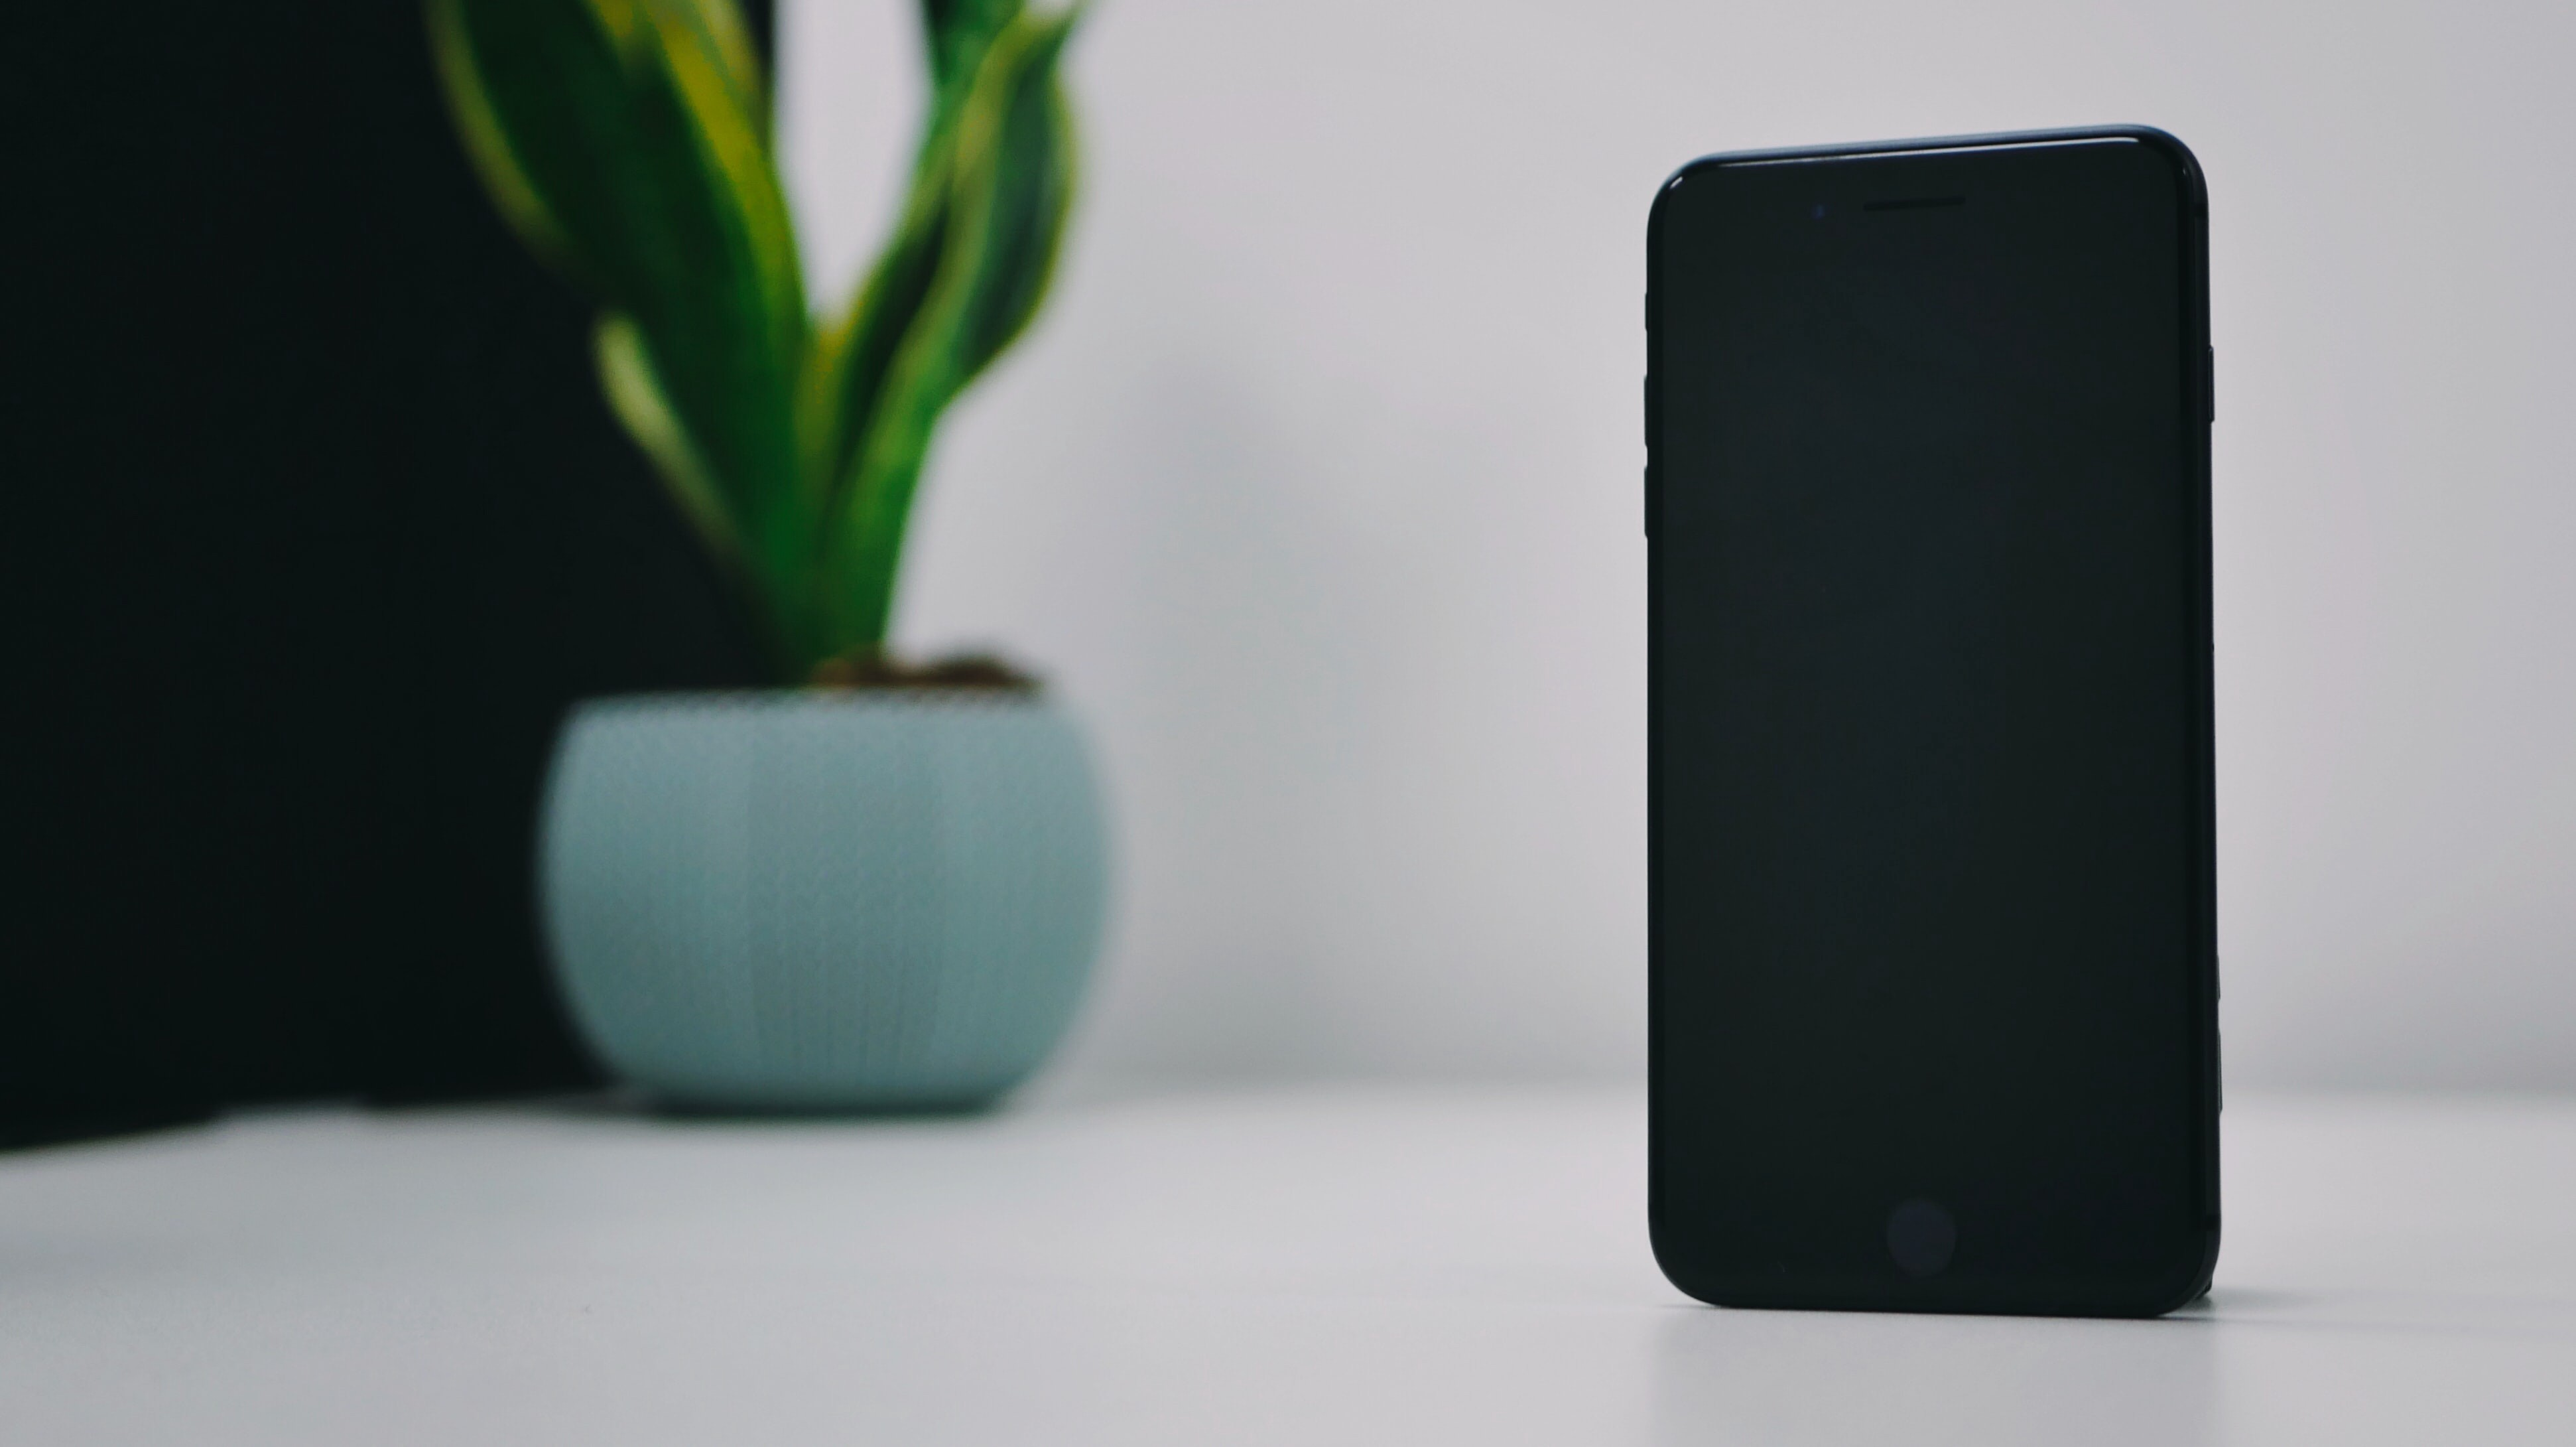 An image of an iPhone sitting empty on a surface